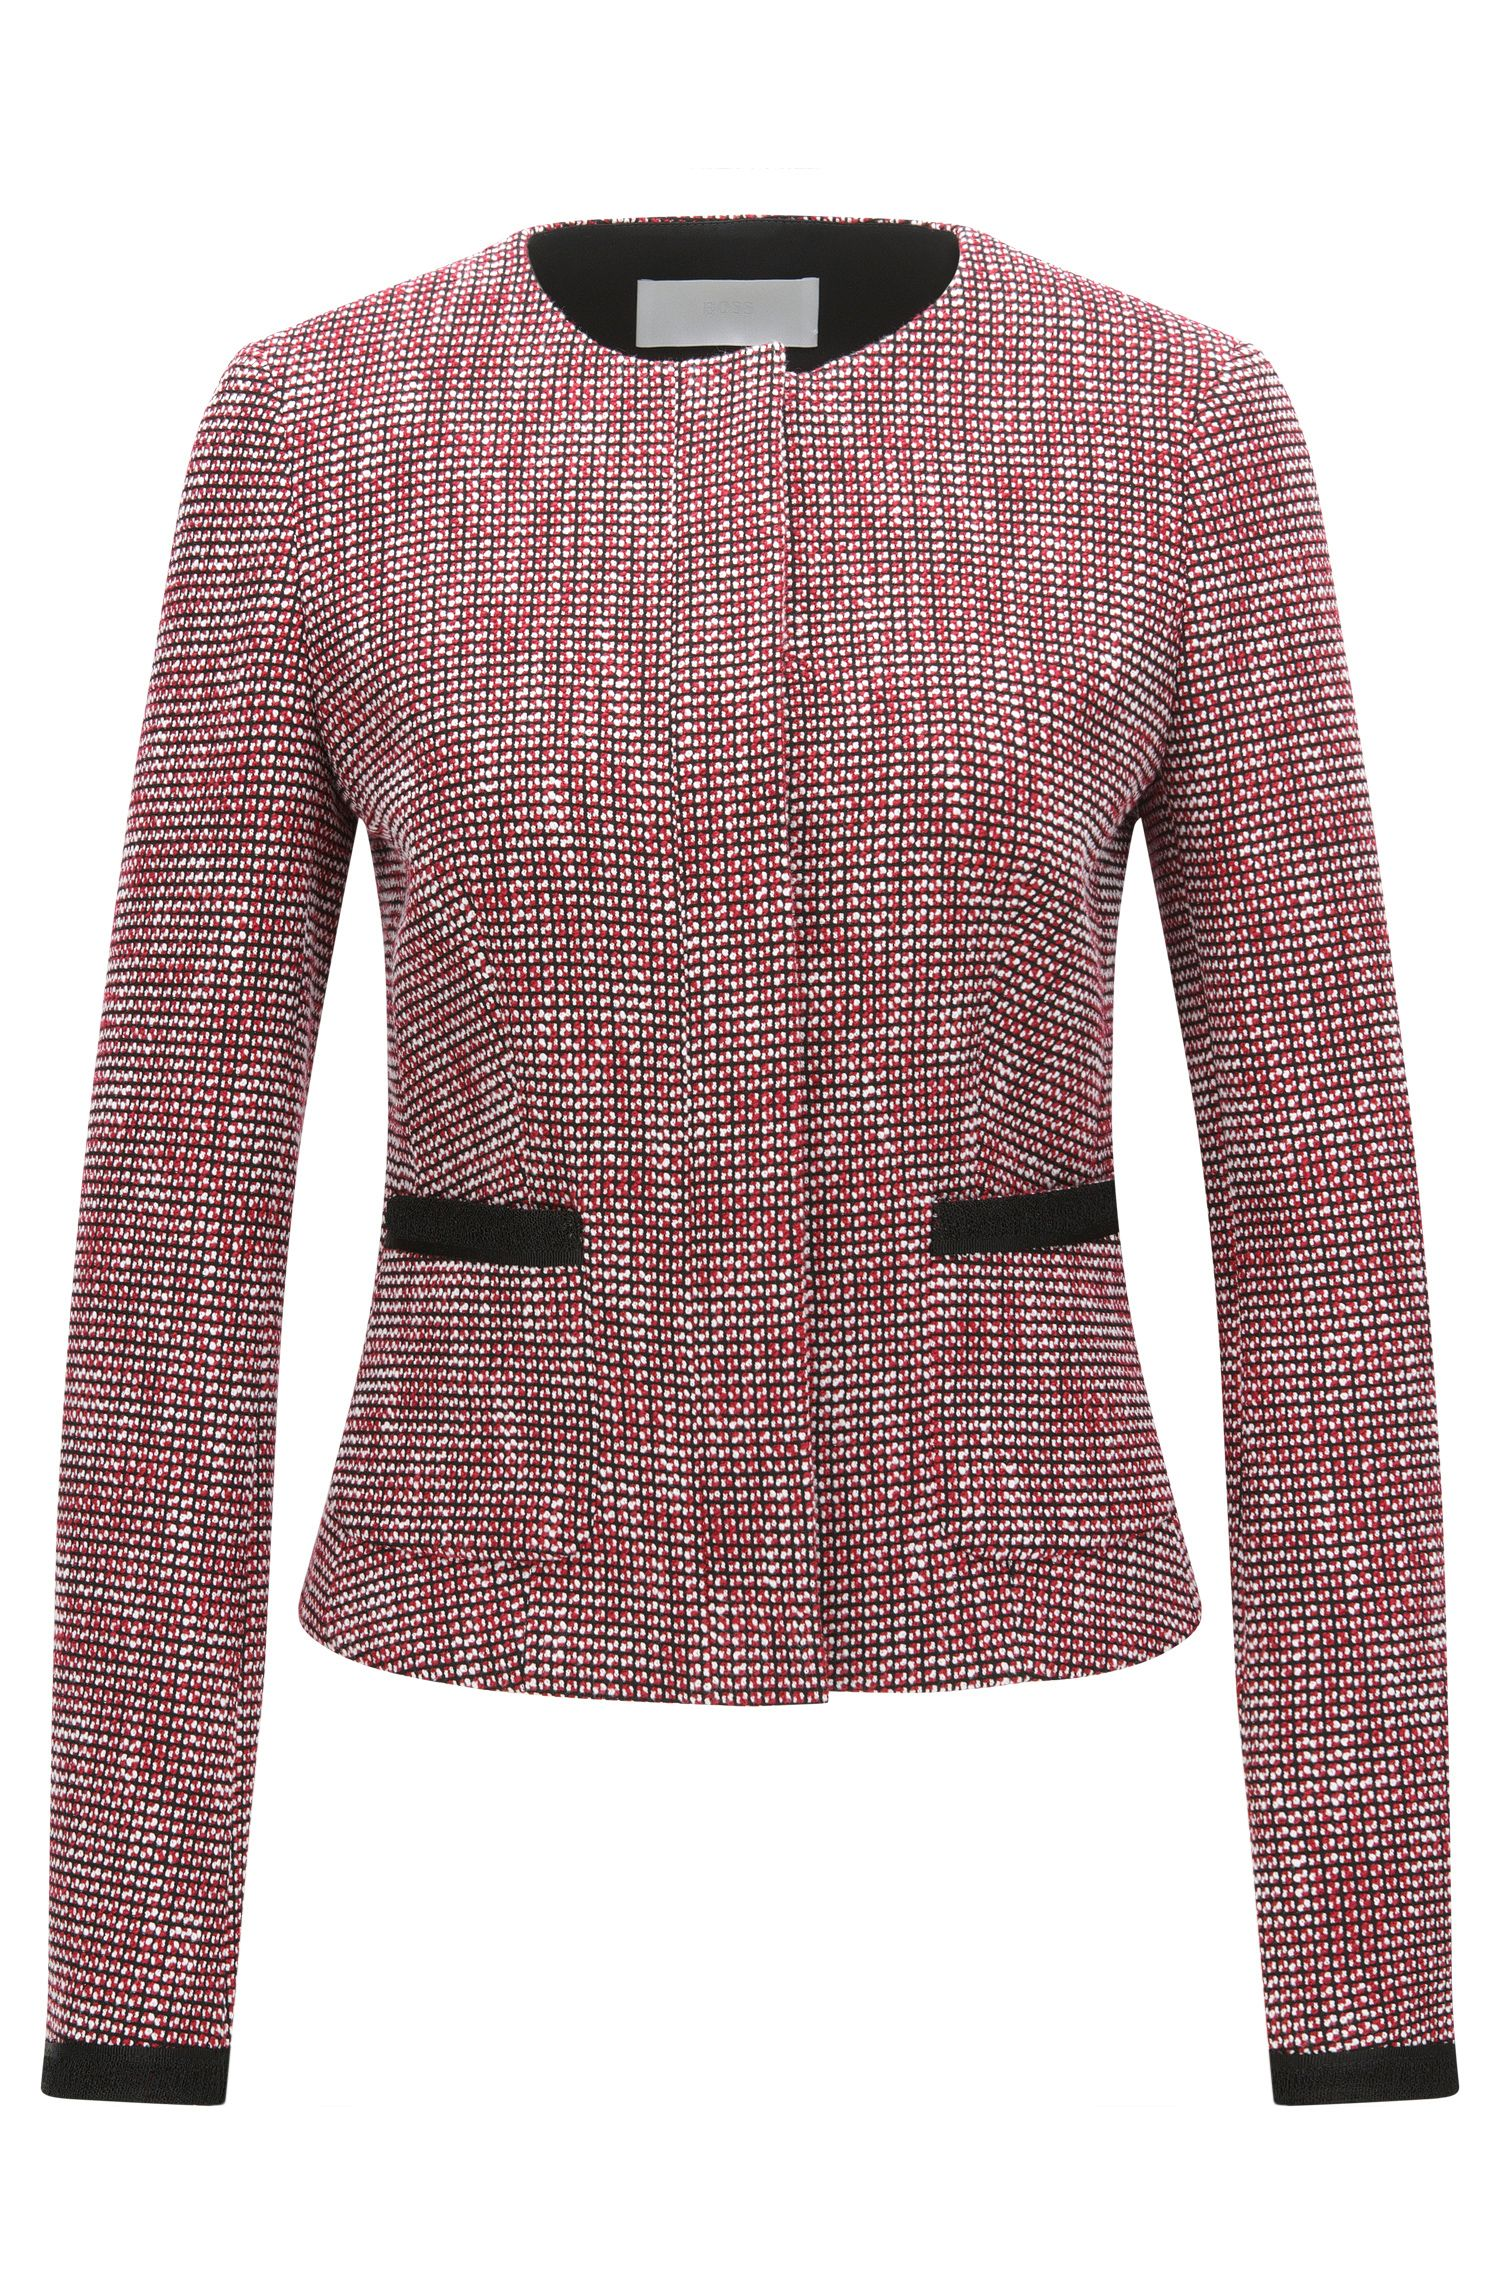 Regular-Fit Blazer aus mehrfarbigem Stretch-Jacquard